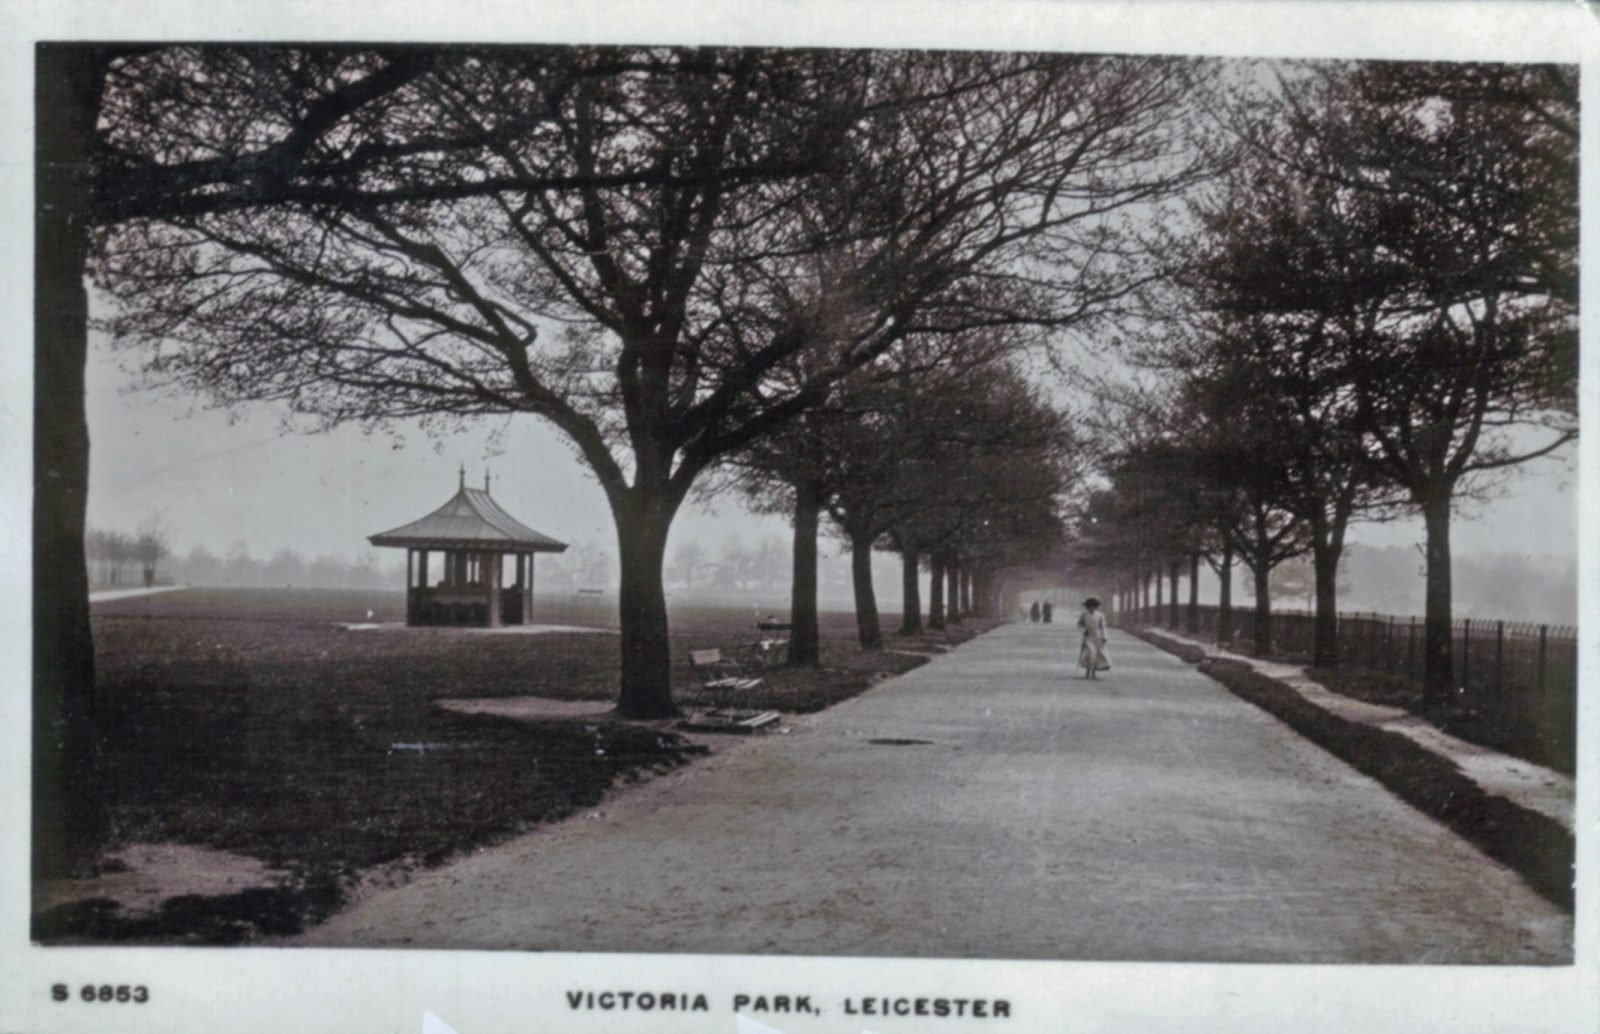 Victoria Park, Leicester. 1901-1920: Broad walk and gazebo. Woman walking. Franked 1912 (File:1079)